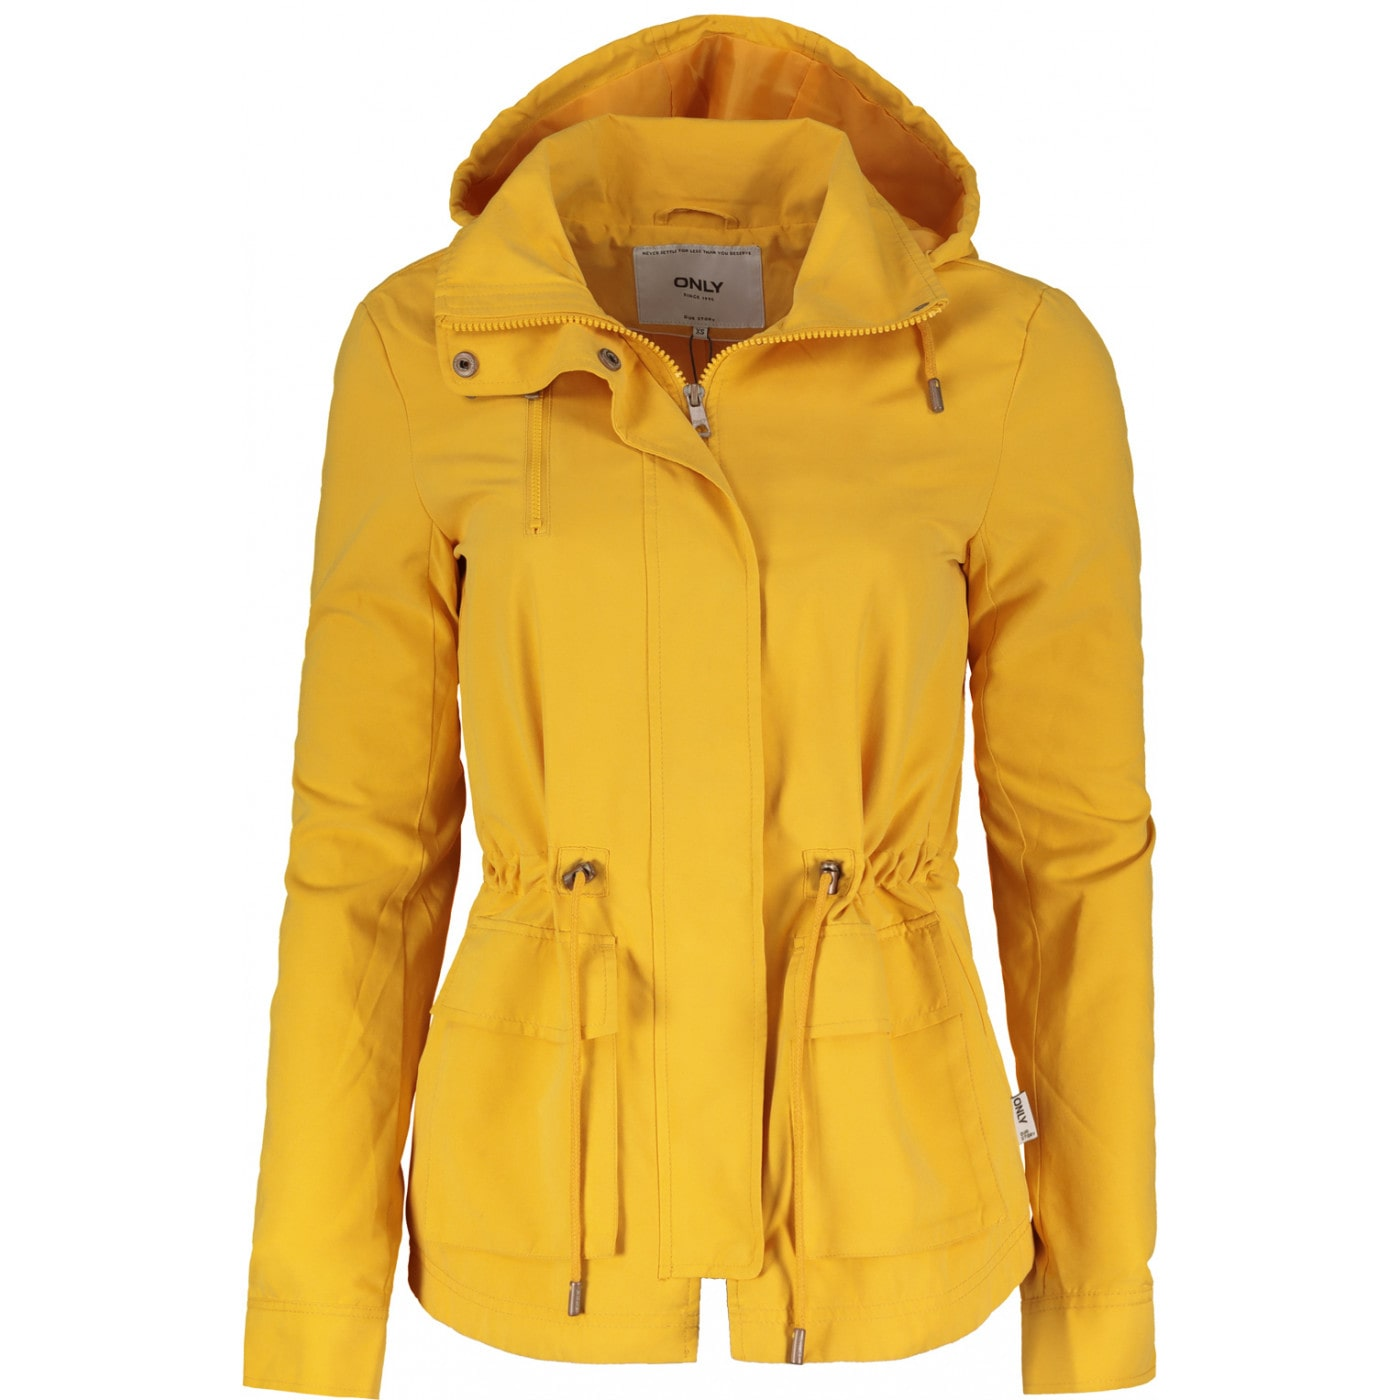 Only Spring Parka Coat